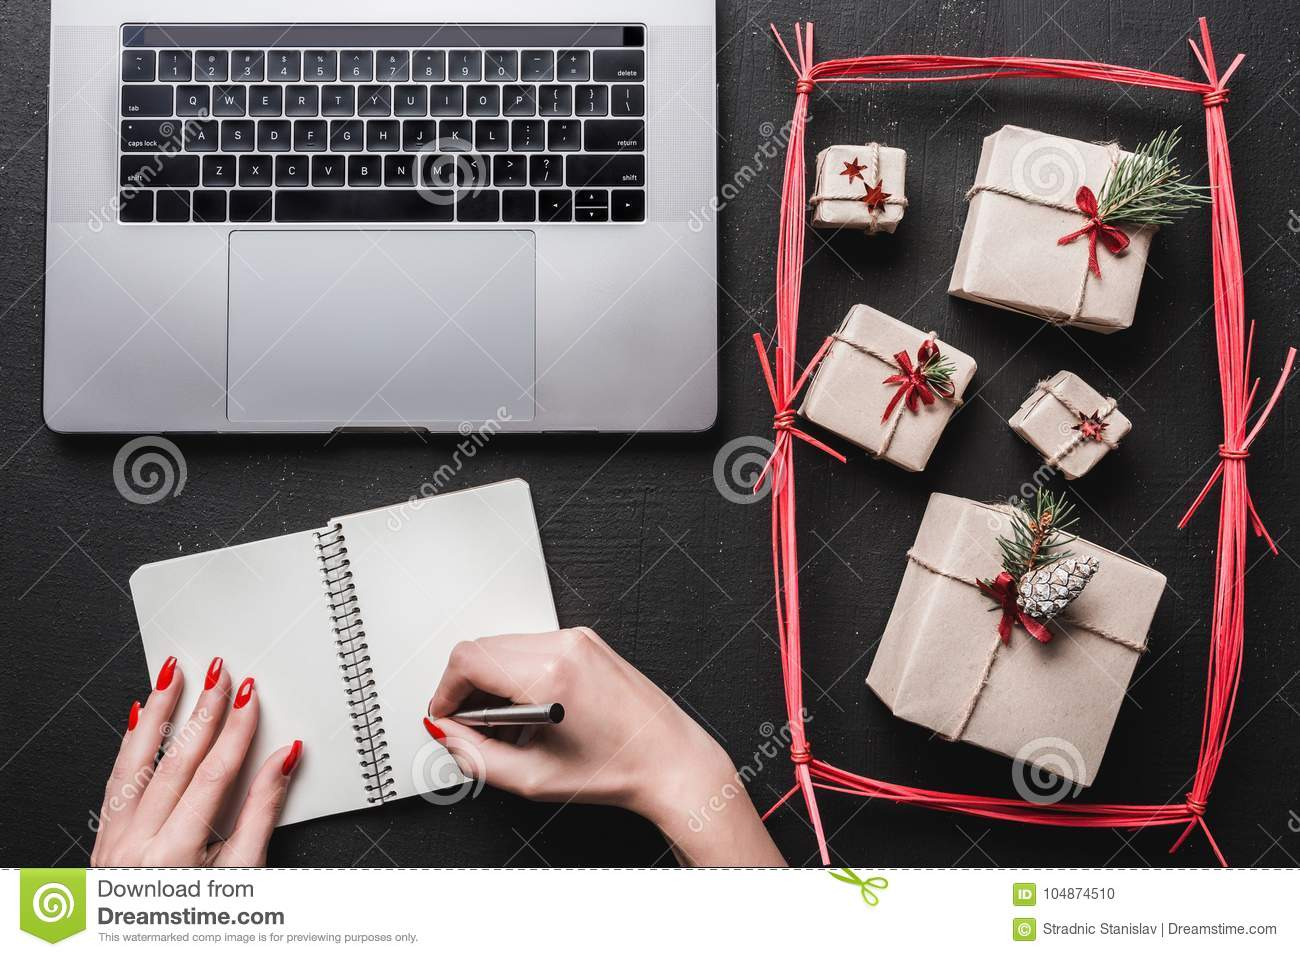 On black background, many gifts and computer. On a book, a lady`s hands want to write.